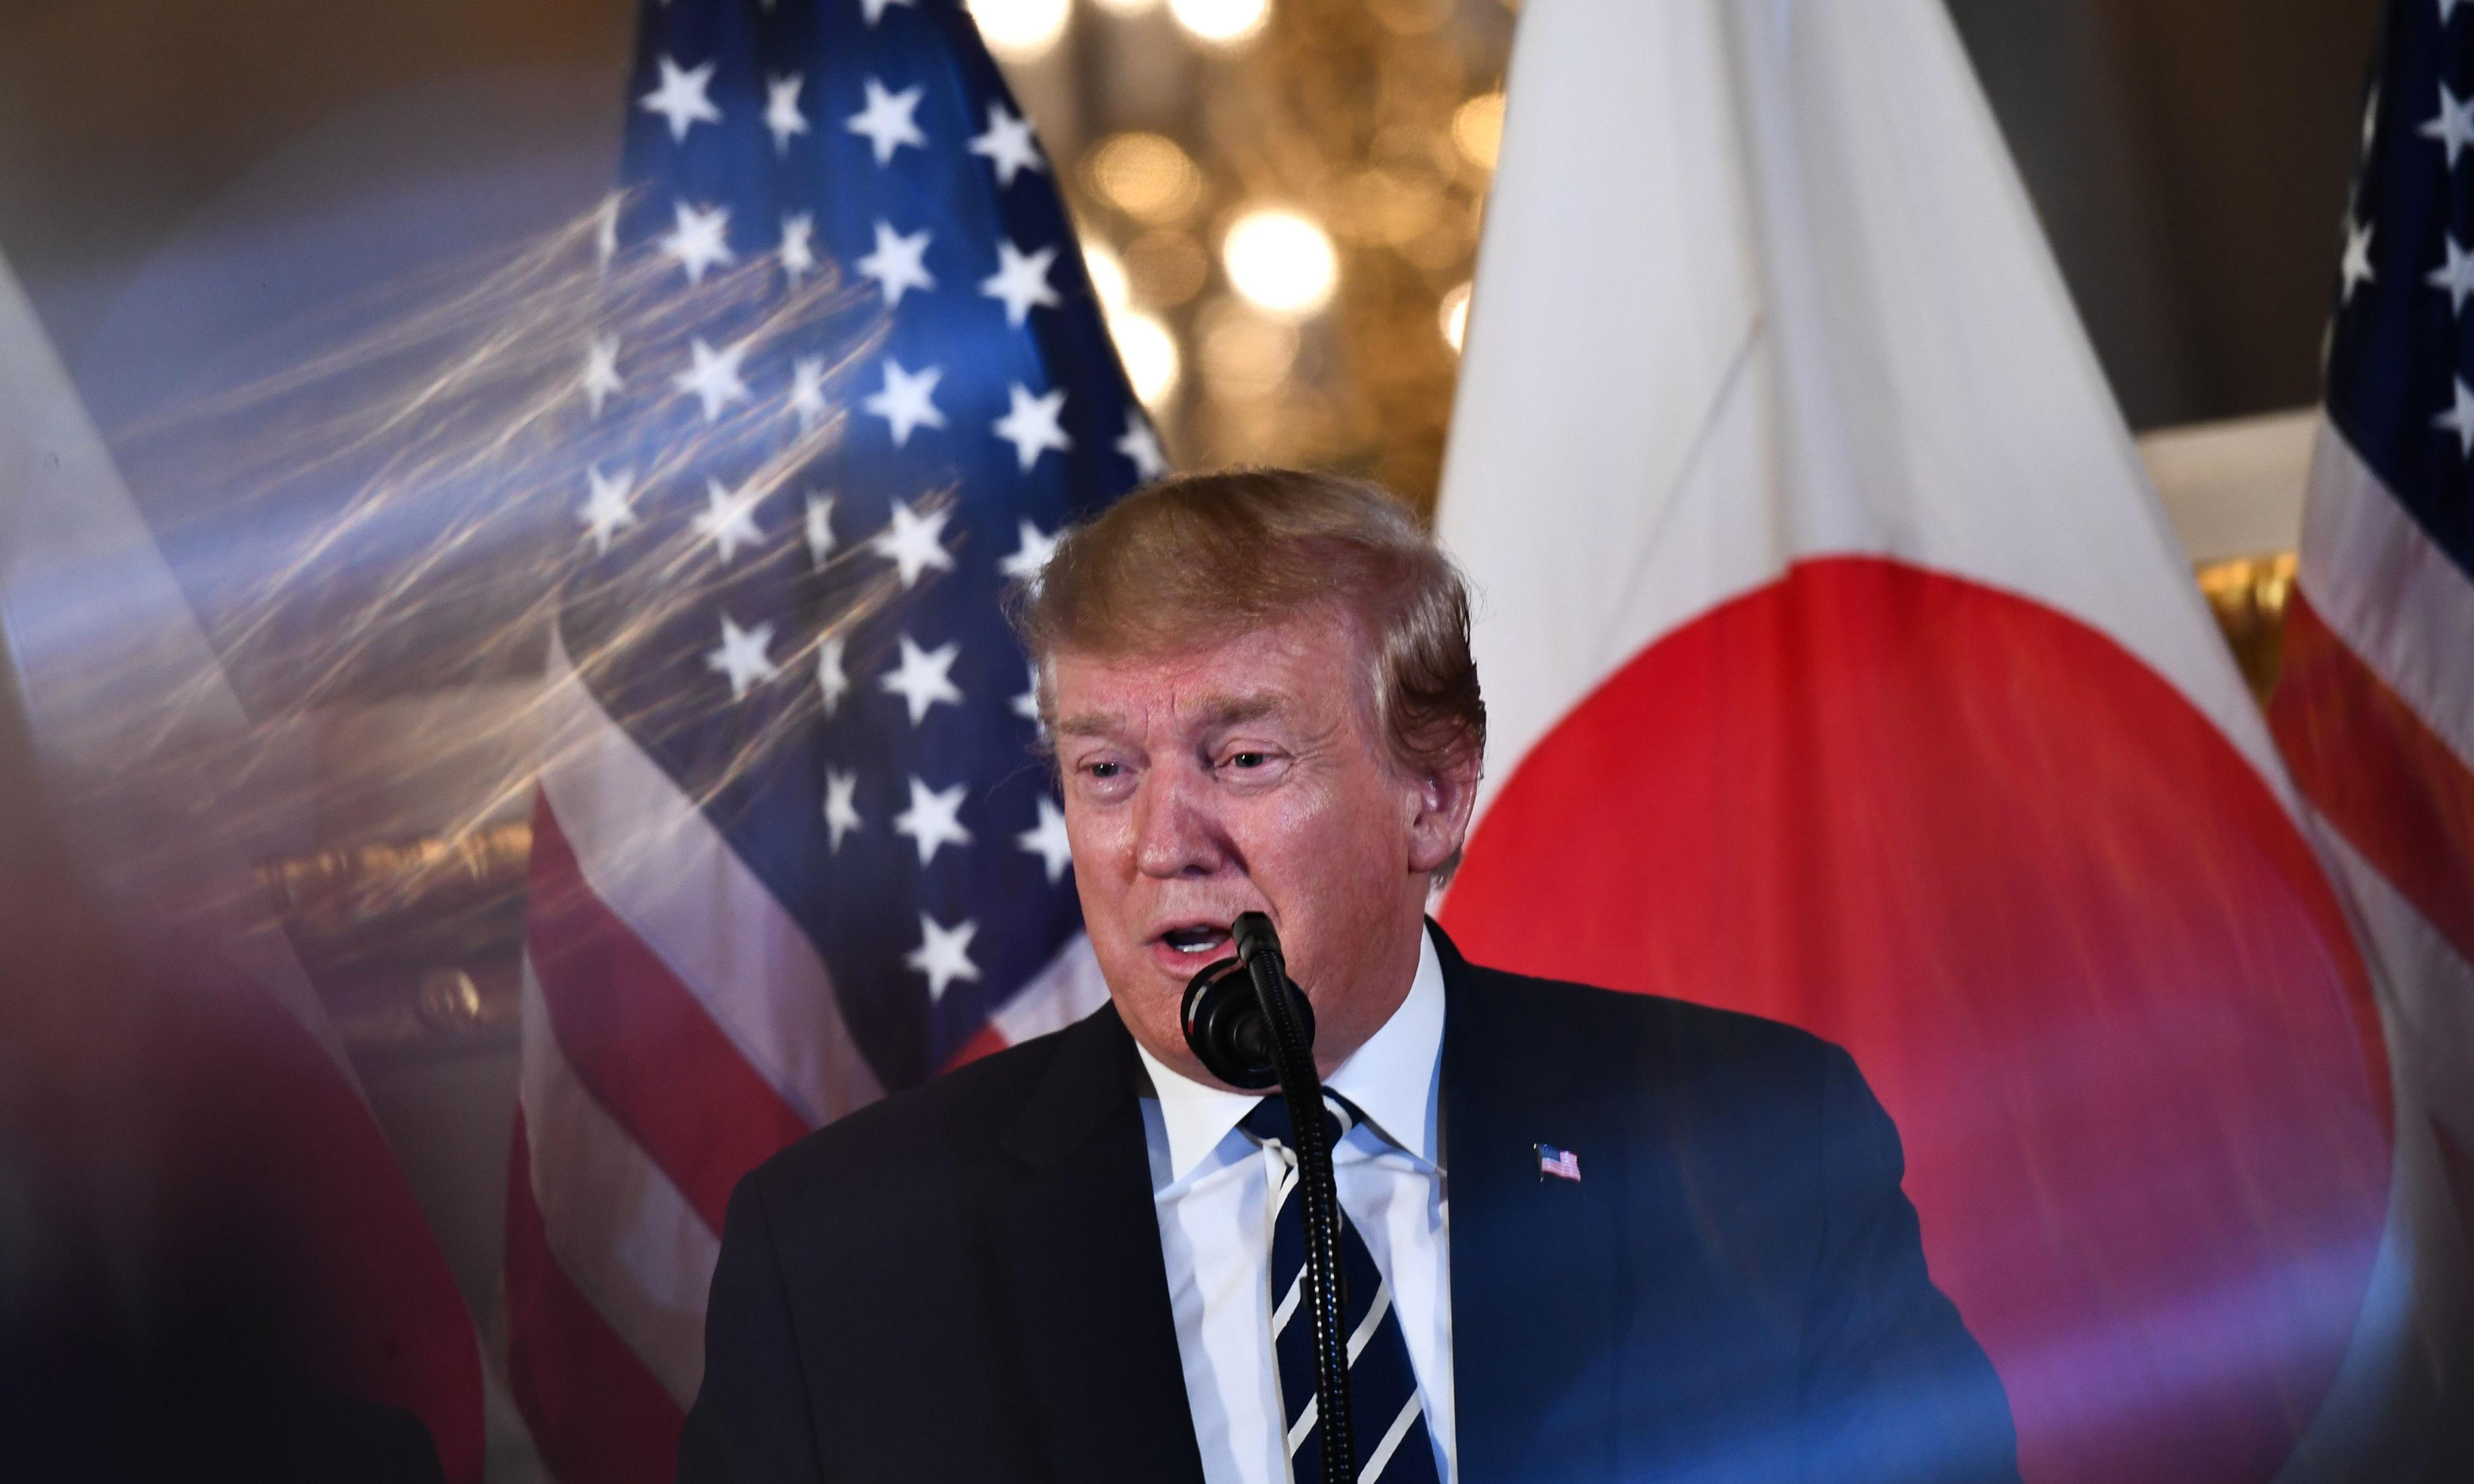 Trump arrives in Tokyo and digs Japan for 'substantial edge' on trade